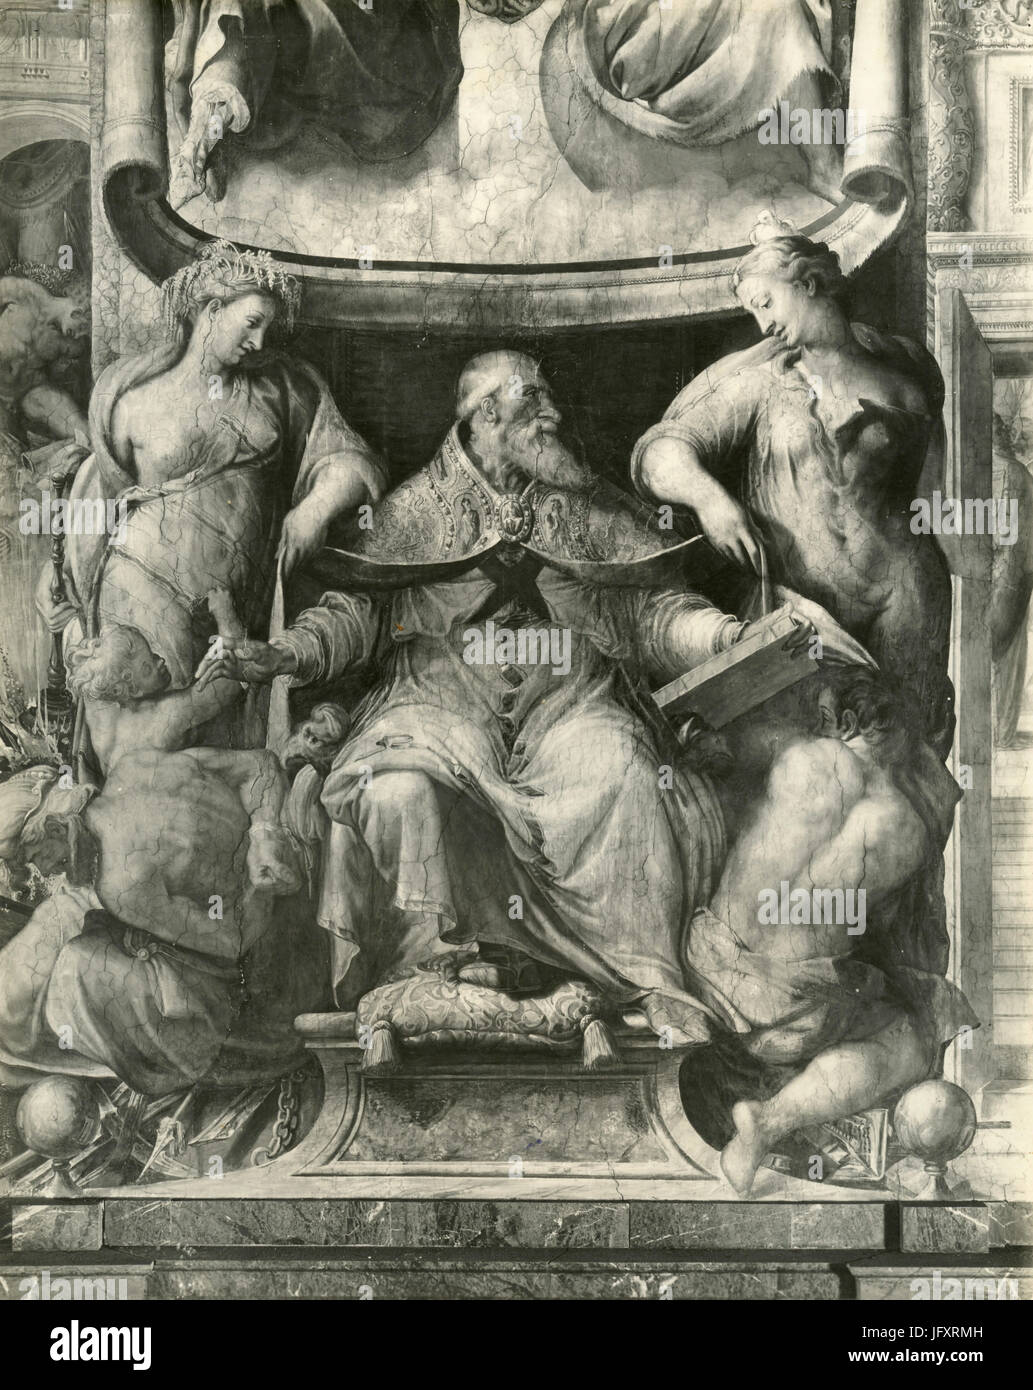 Pope Paulus III and two goddesses, painting by Francesco Salviati, Palazzo Farnese, Rome, Italy Stock Photo